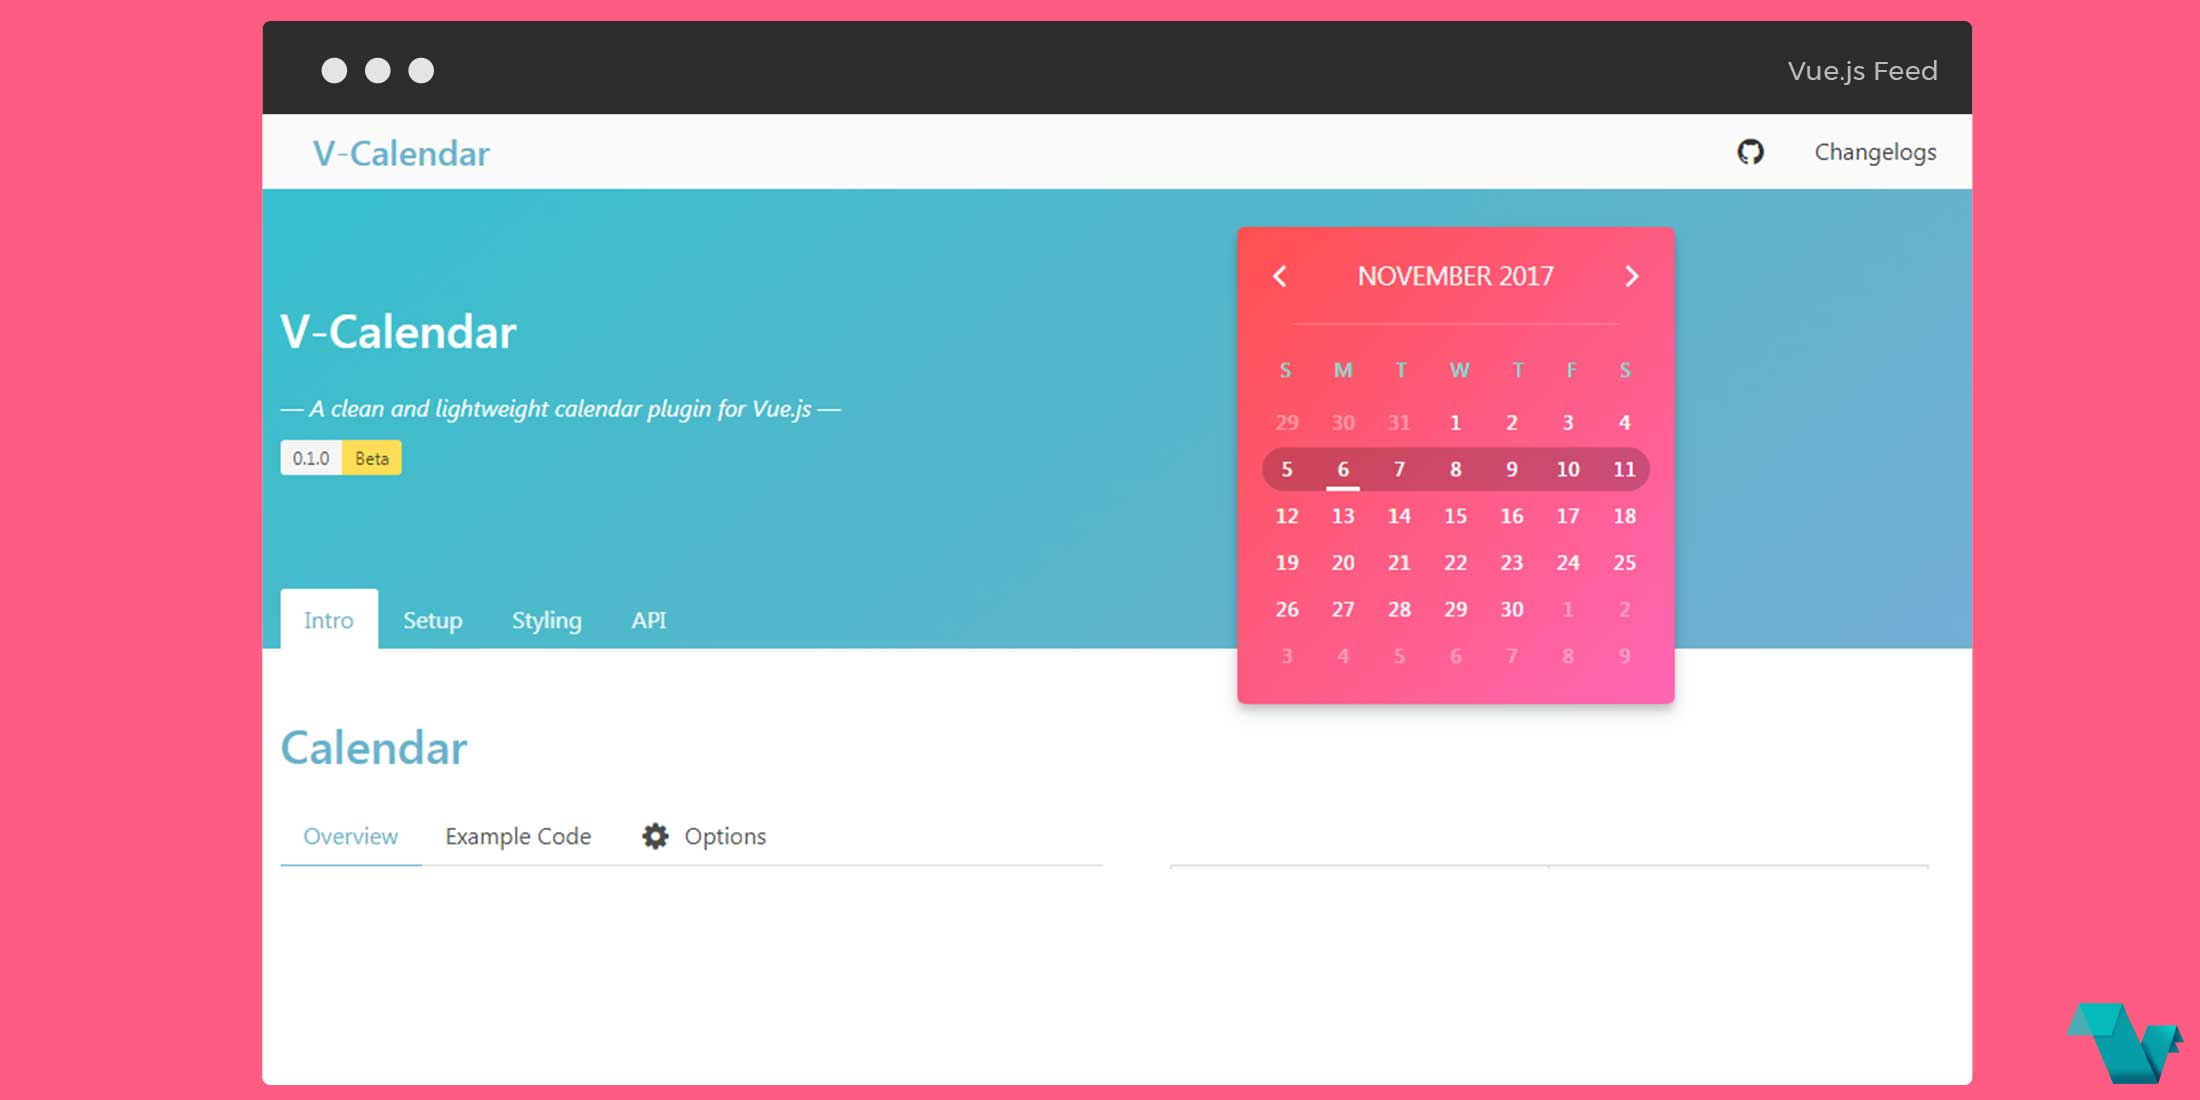 V-Calendar: A clean and lightweight calendar plugin for Vue js - Vue